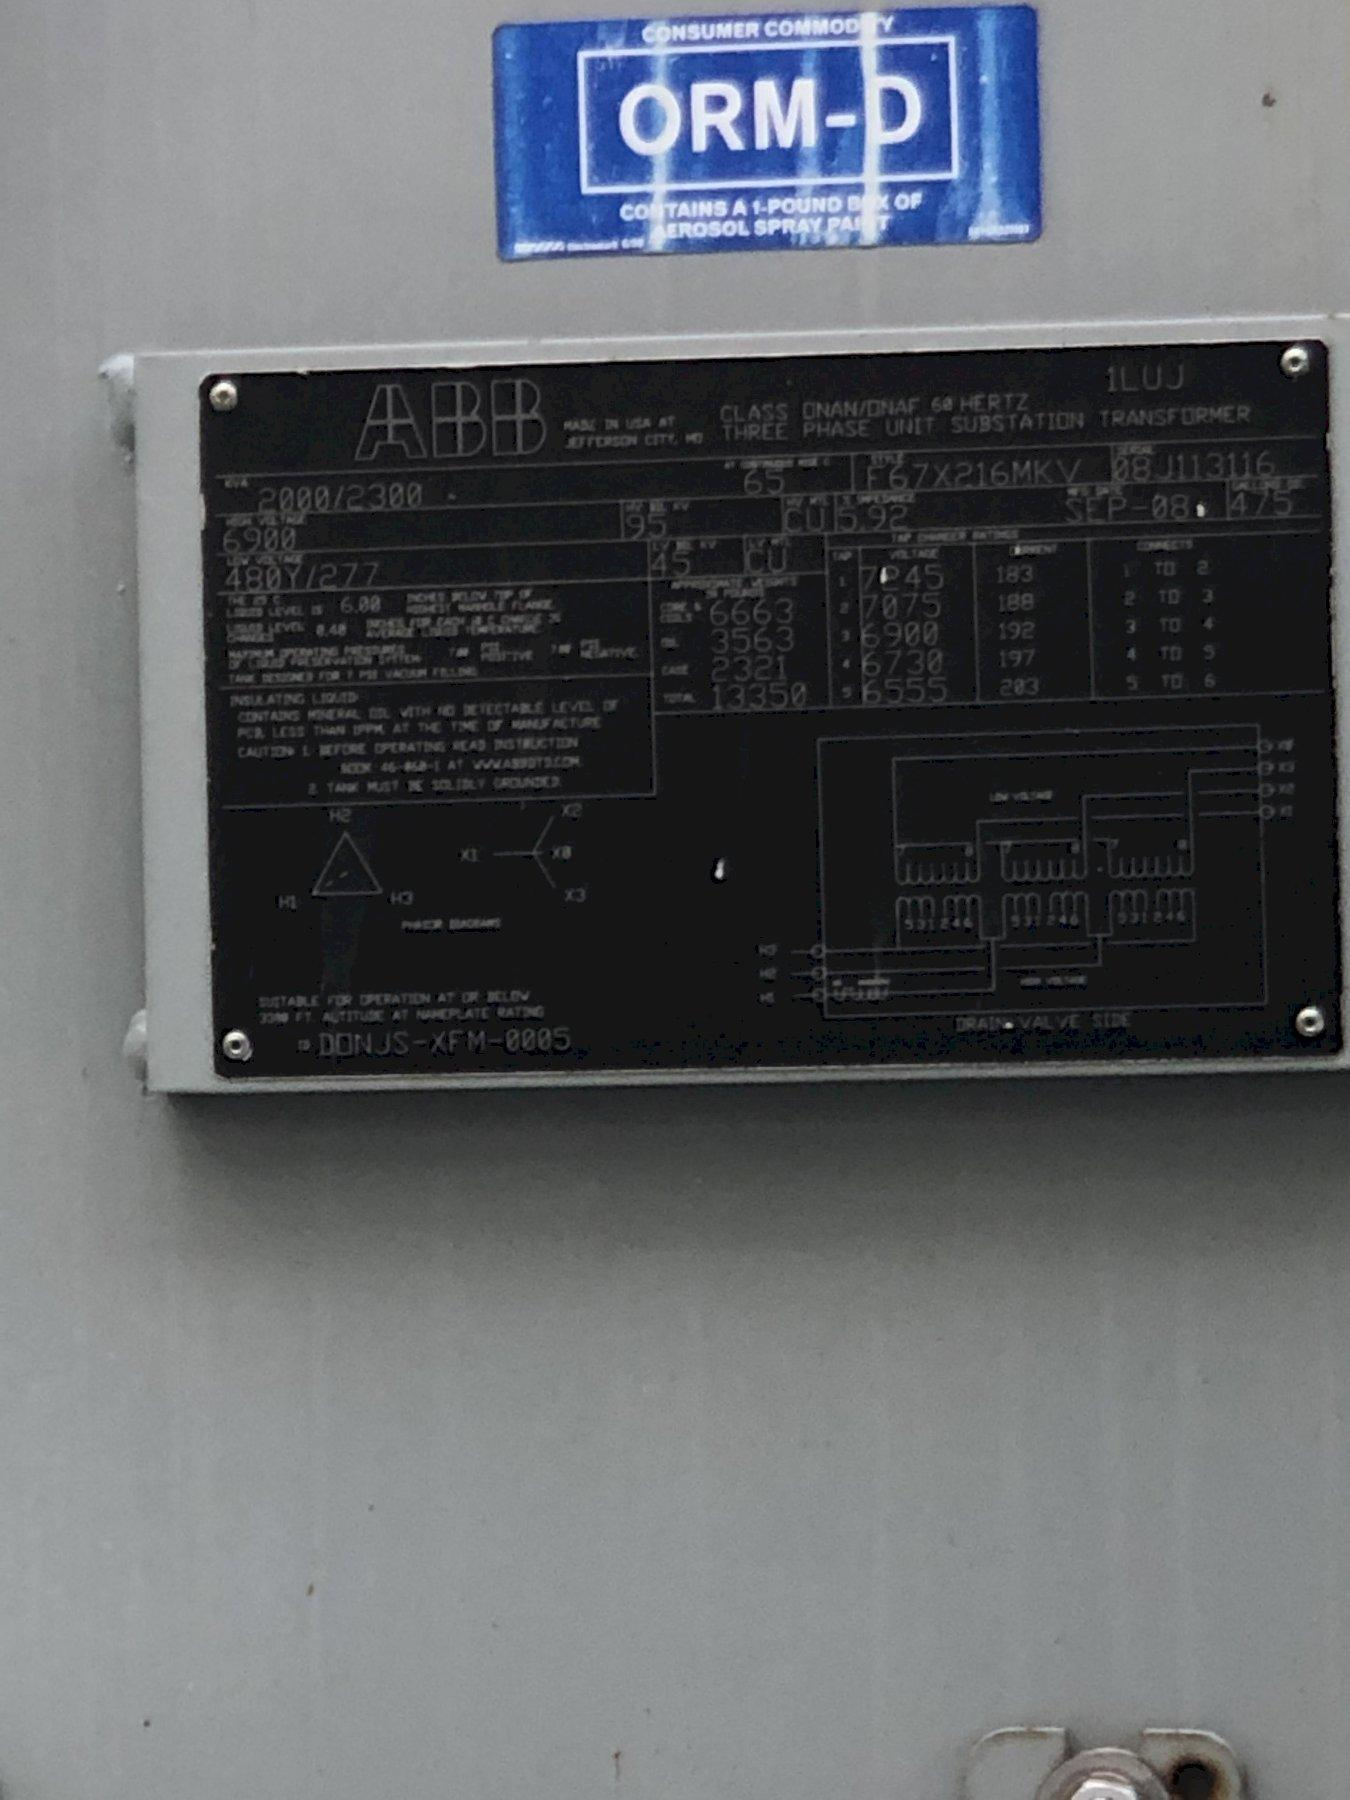 # 5 2008 ABB 2000/2300 kva transformer s/n 08j113116 rated at 6900 primary volts with 5 taps, 480y/277 secondary volts